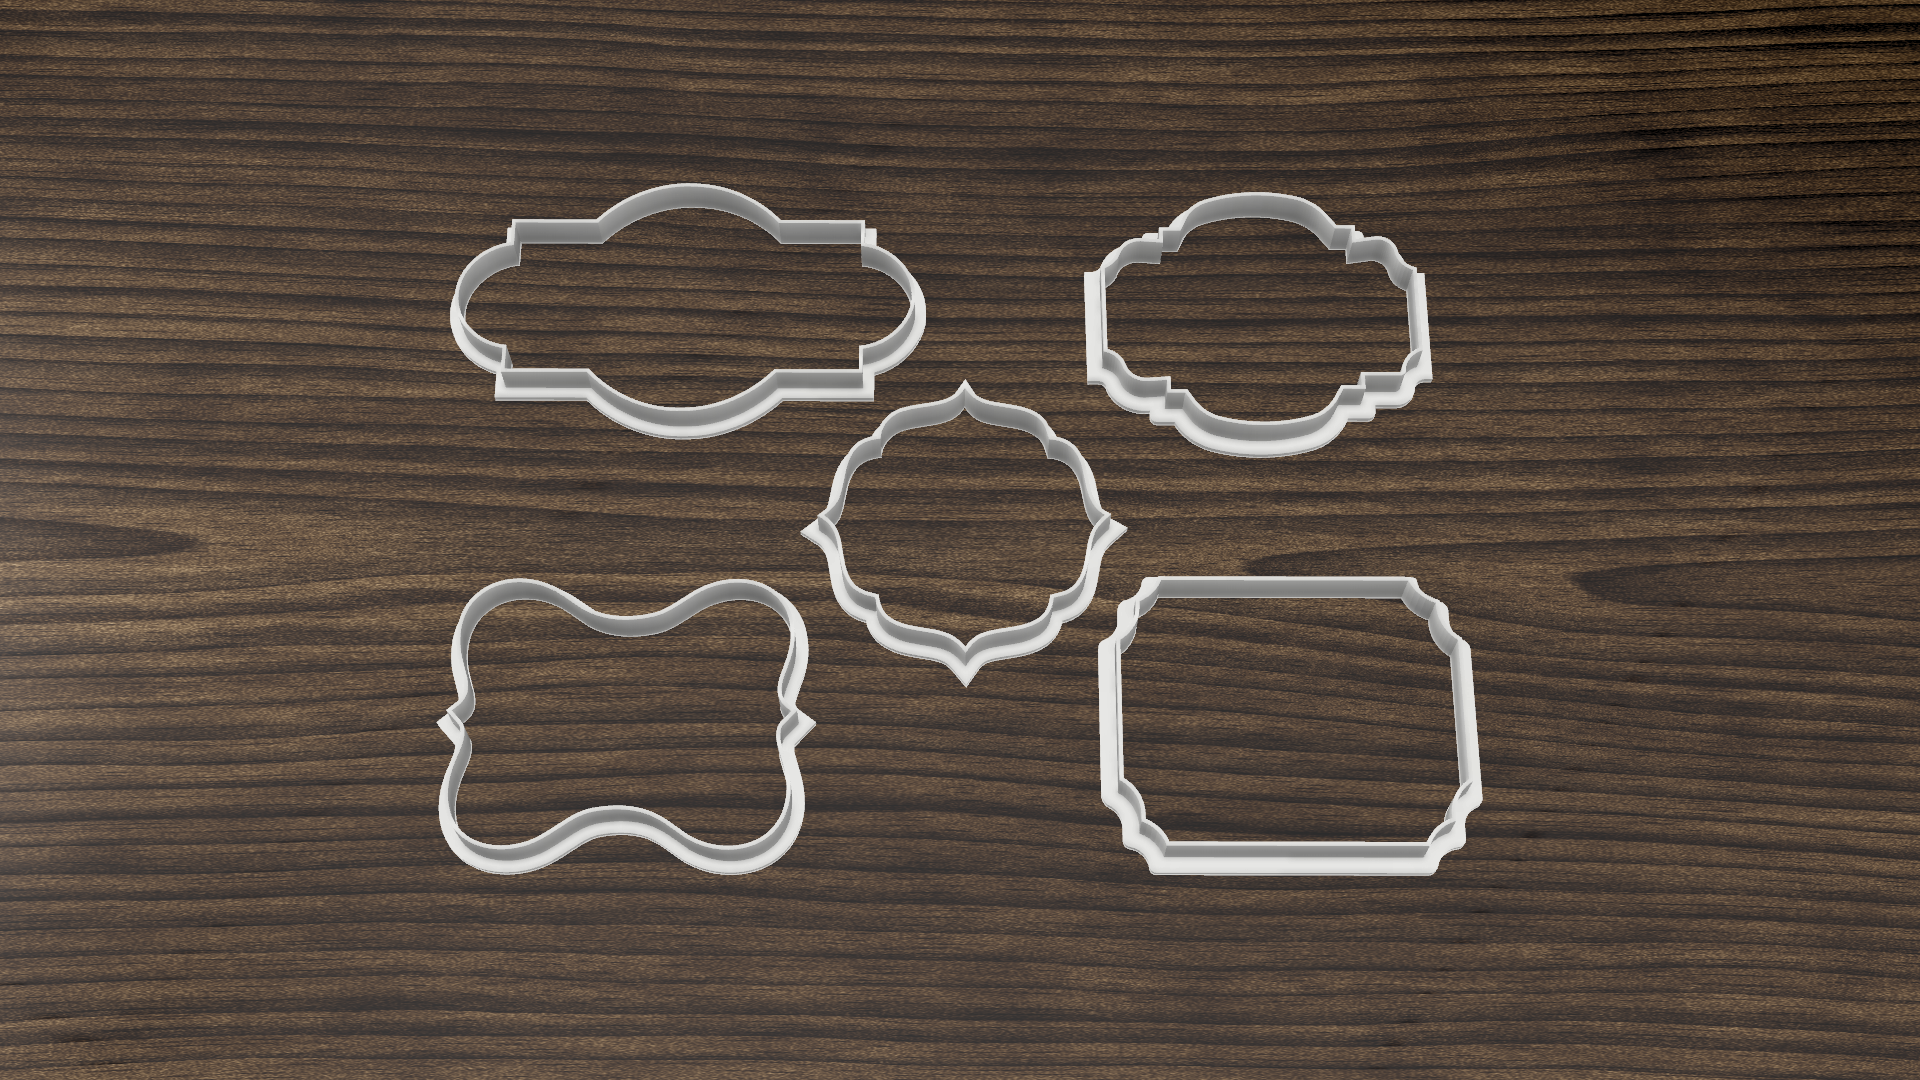 Download Stl File Set X10 Vintage Frame Cookie Cutters Template To 3d Print Cults